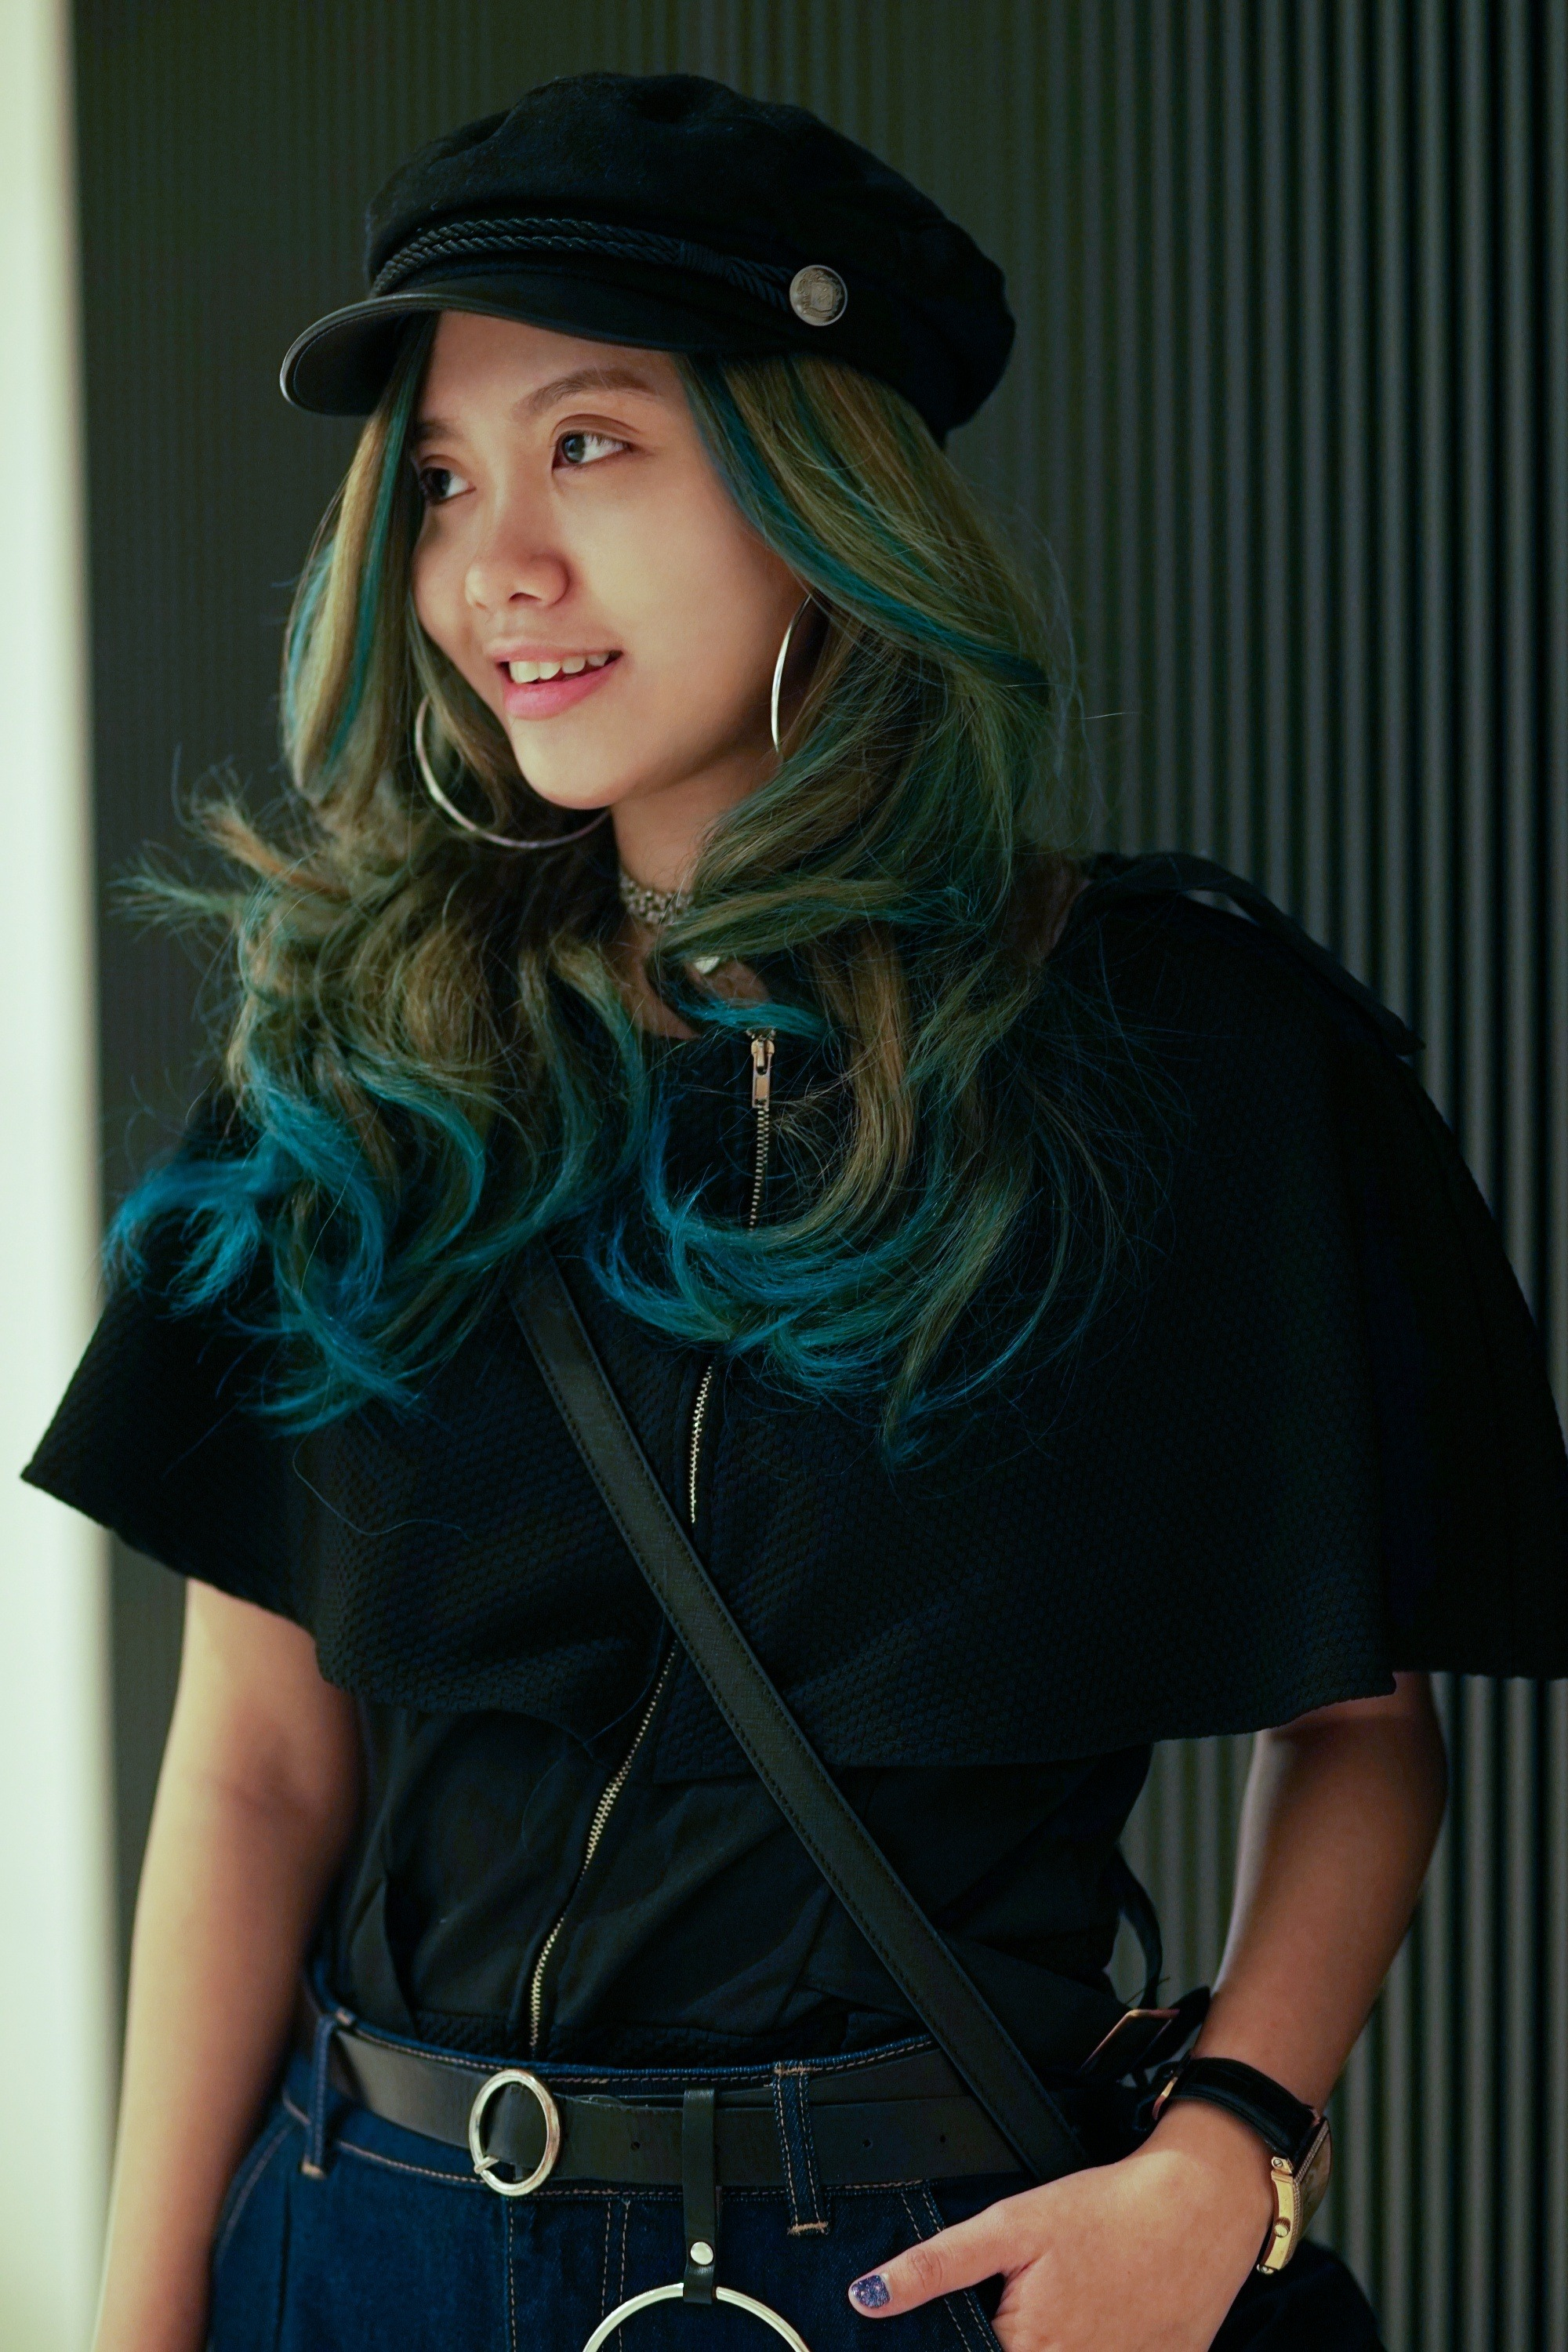 How often should you change your hair color: Asian woman with long wavy multicolored hair wearing a black top